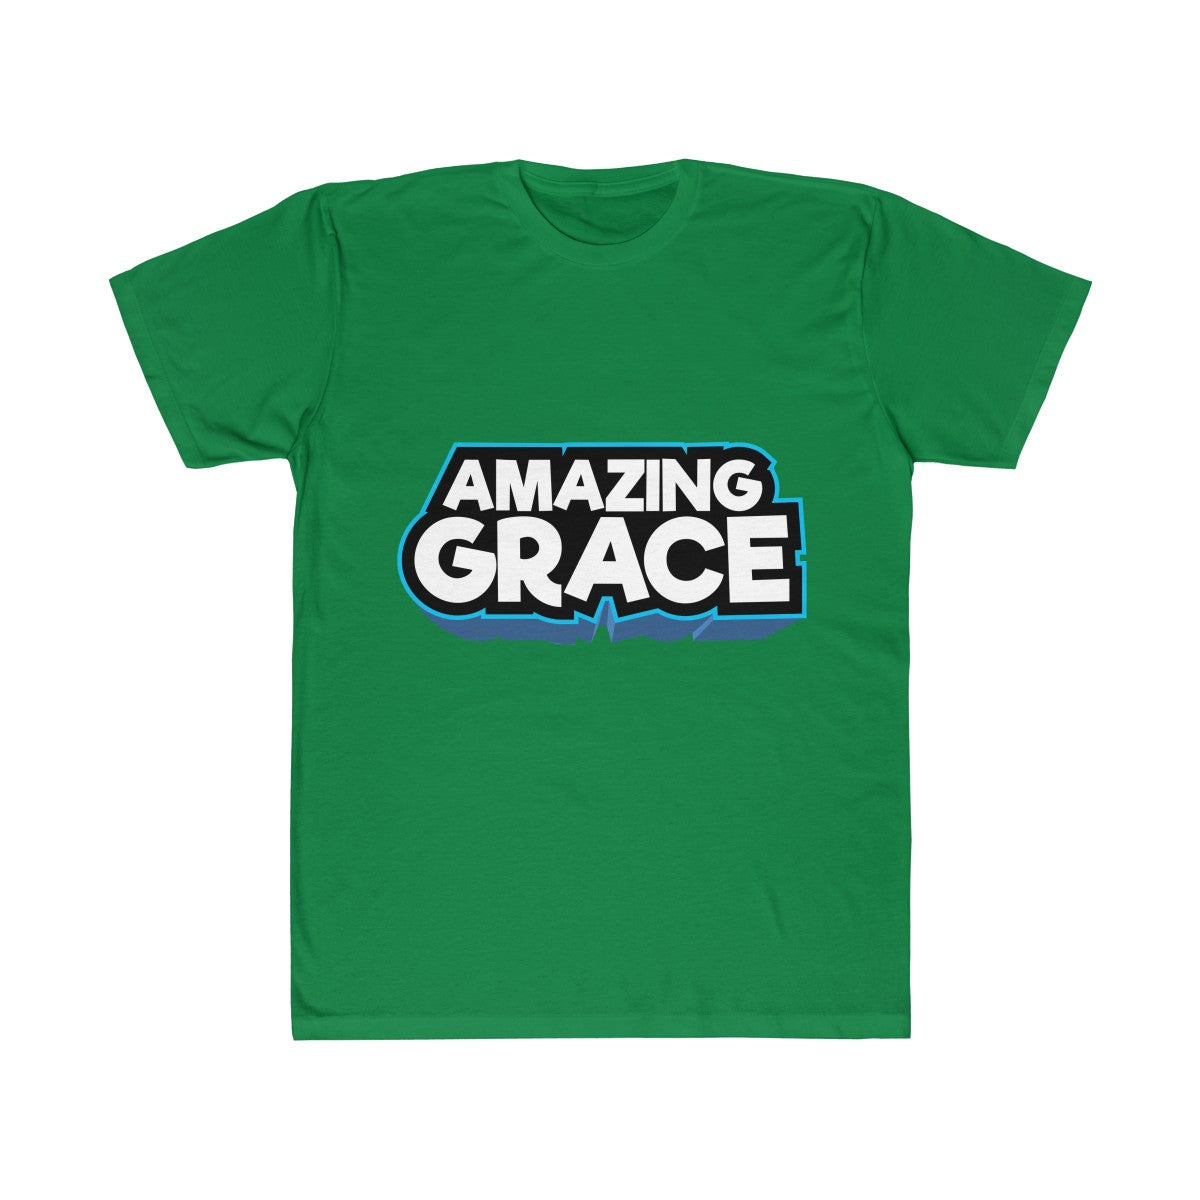 AMAZING GRACE Plain Unisex Fitted Tee